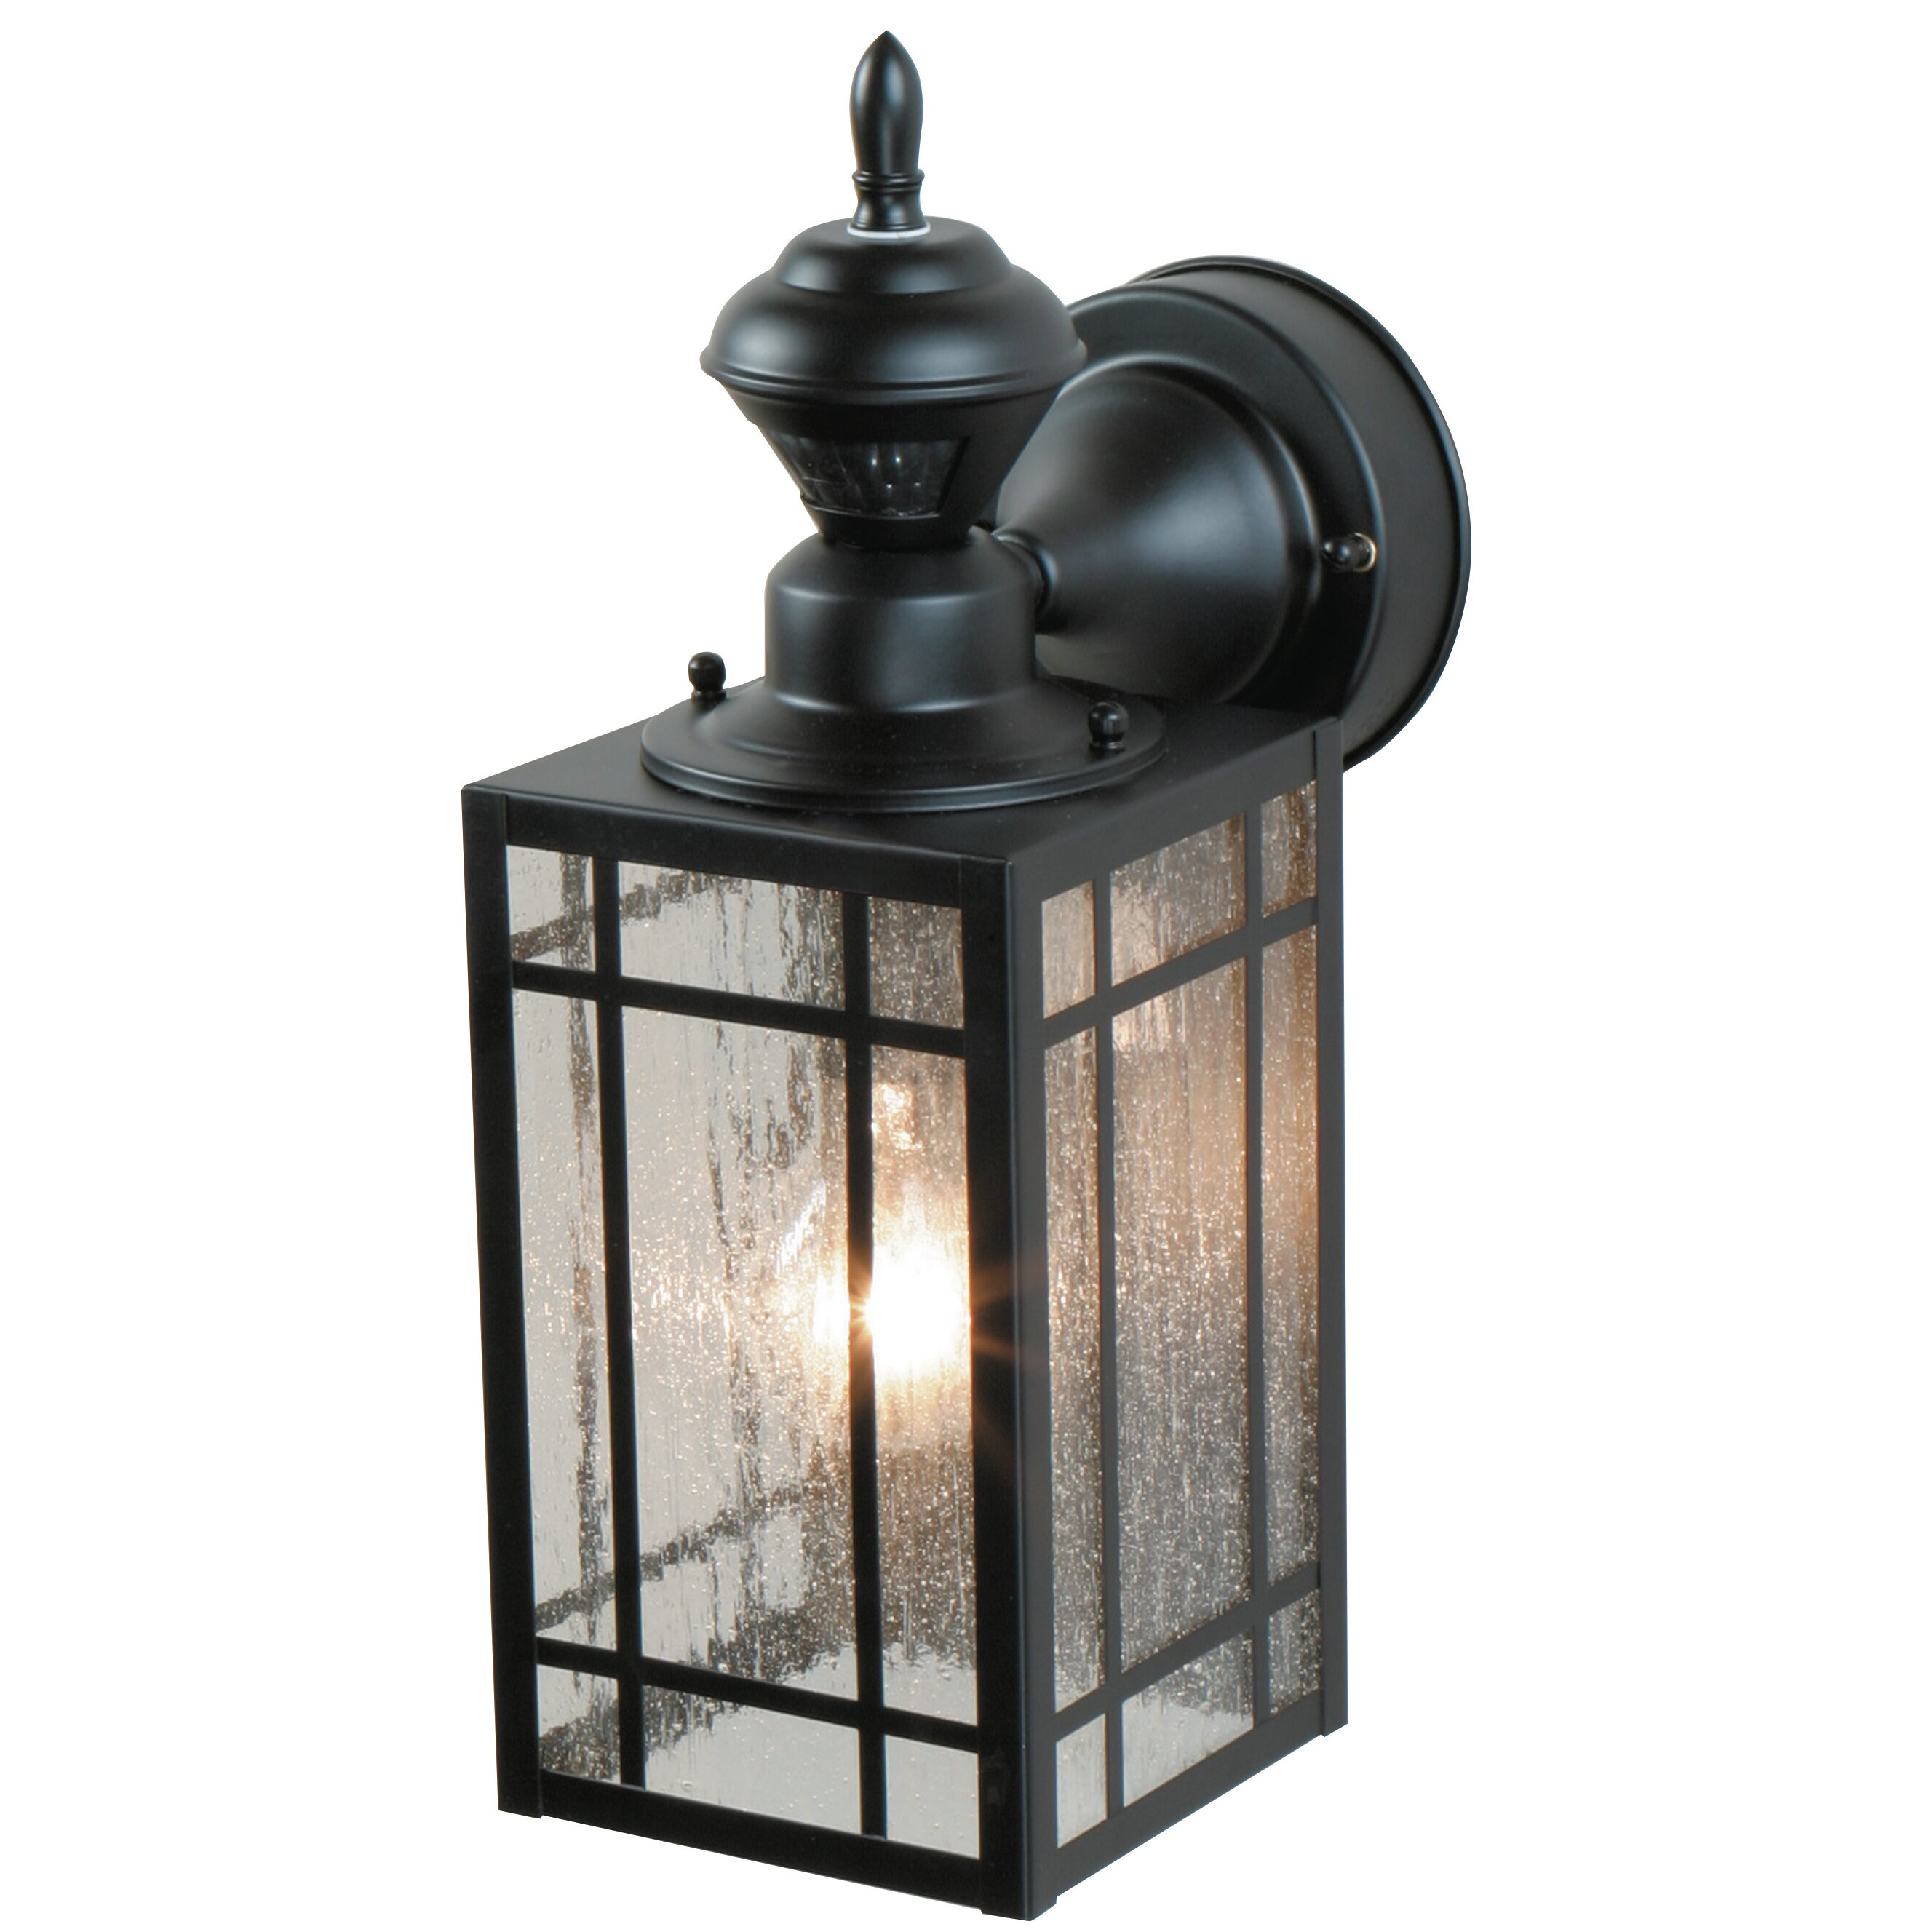 Heath Zenith 1 Light Outdoor Wall Lantern Reviews Wayfair